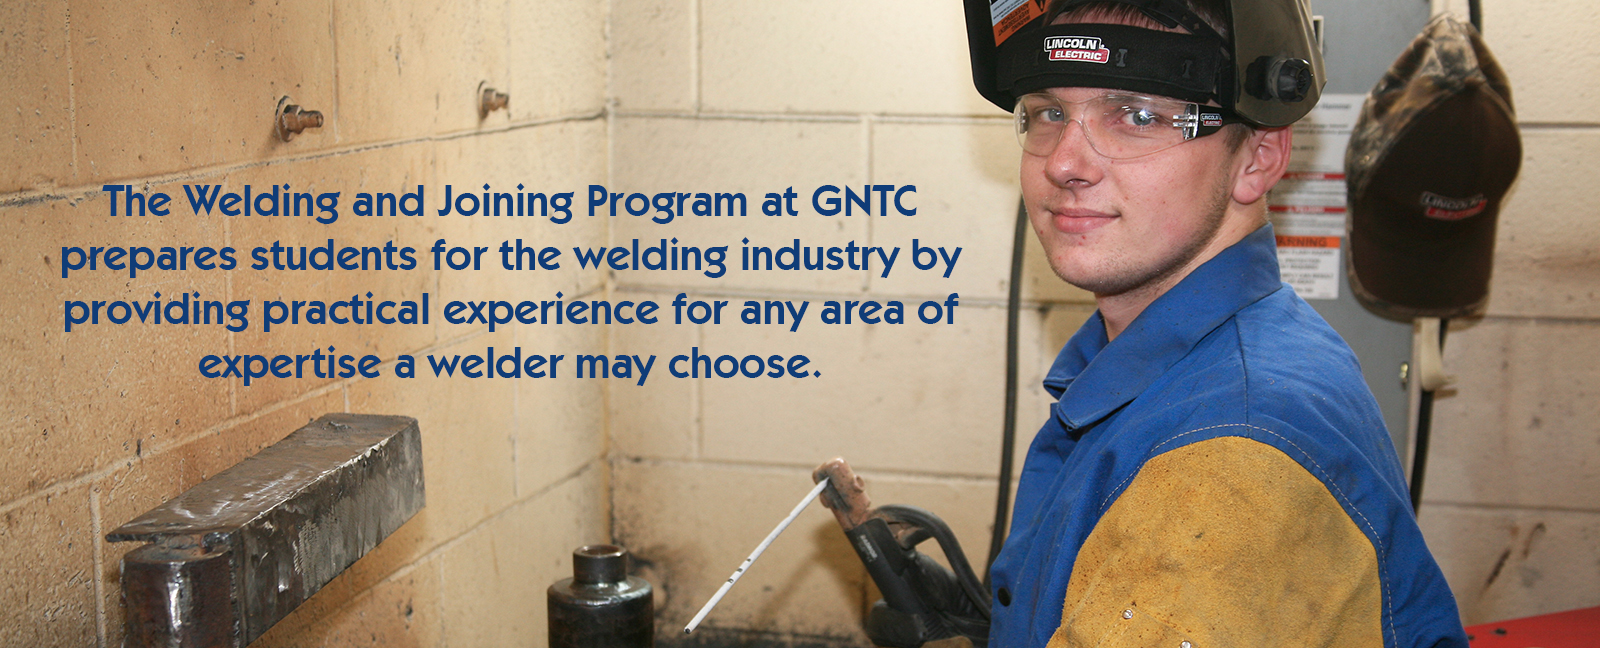 The Welding and Joining Program at GNTC 